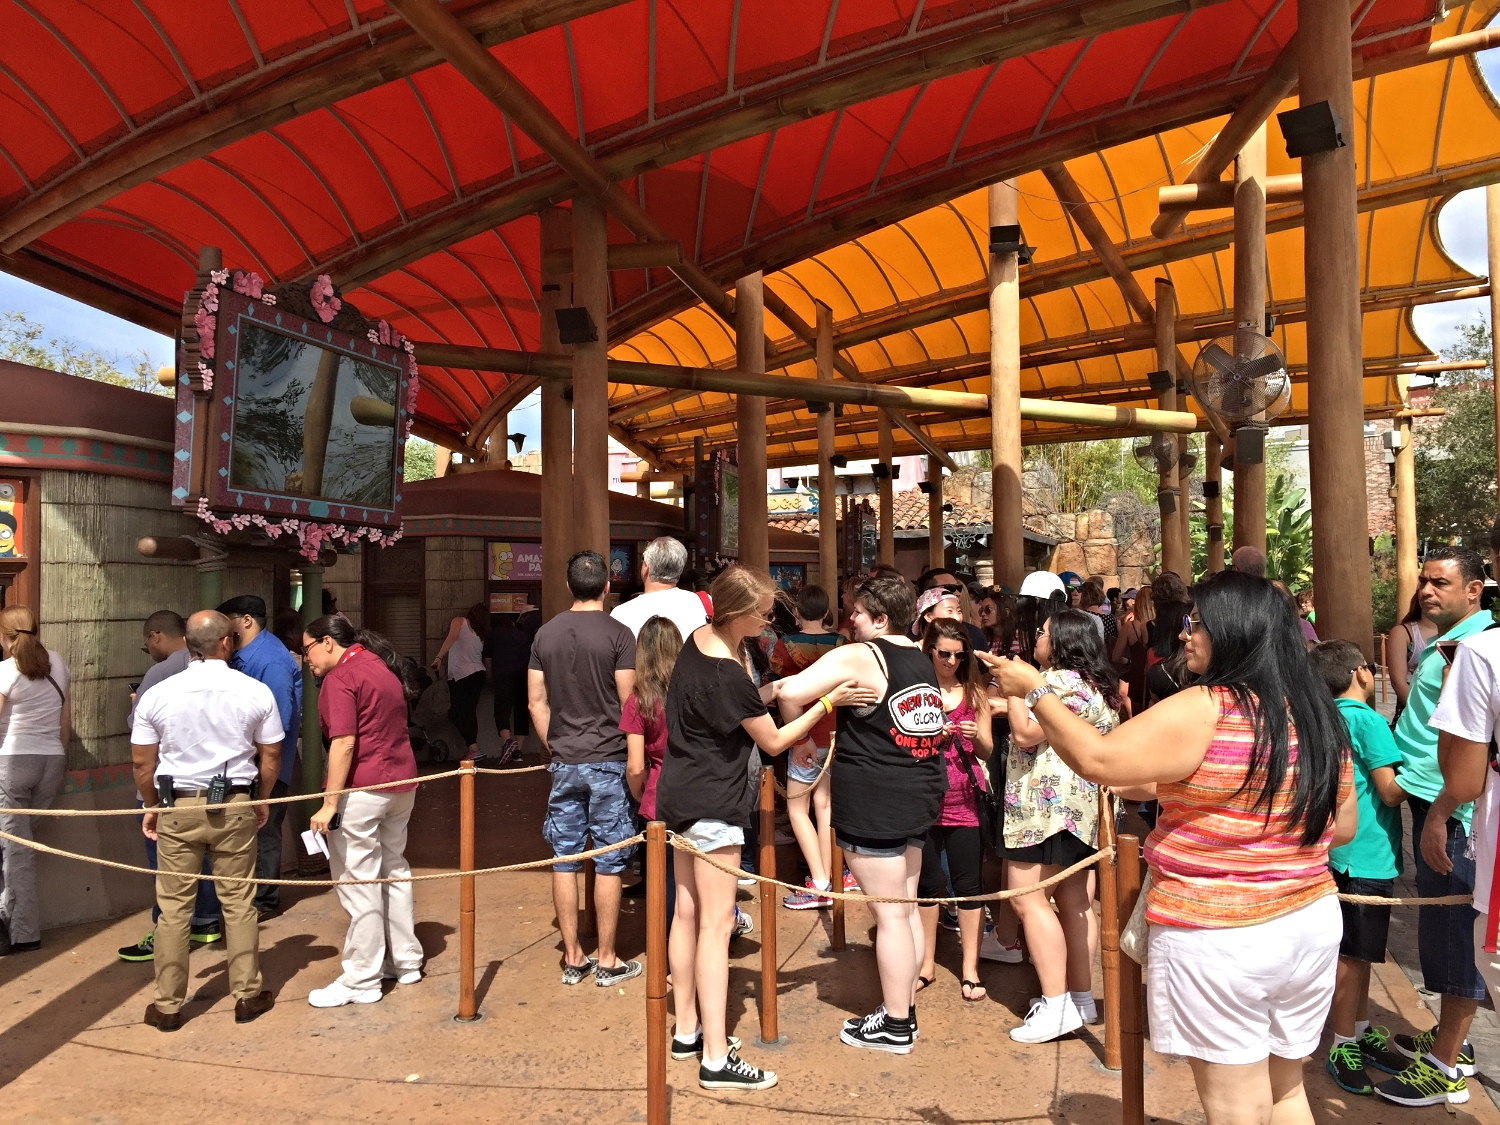 Buy your park tickets in advance so you don't have to wait in a line like this one.